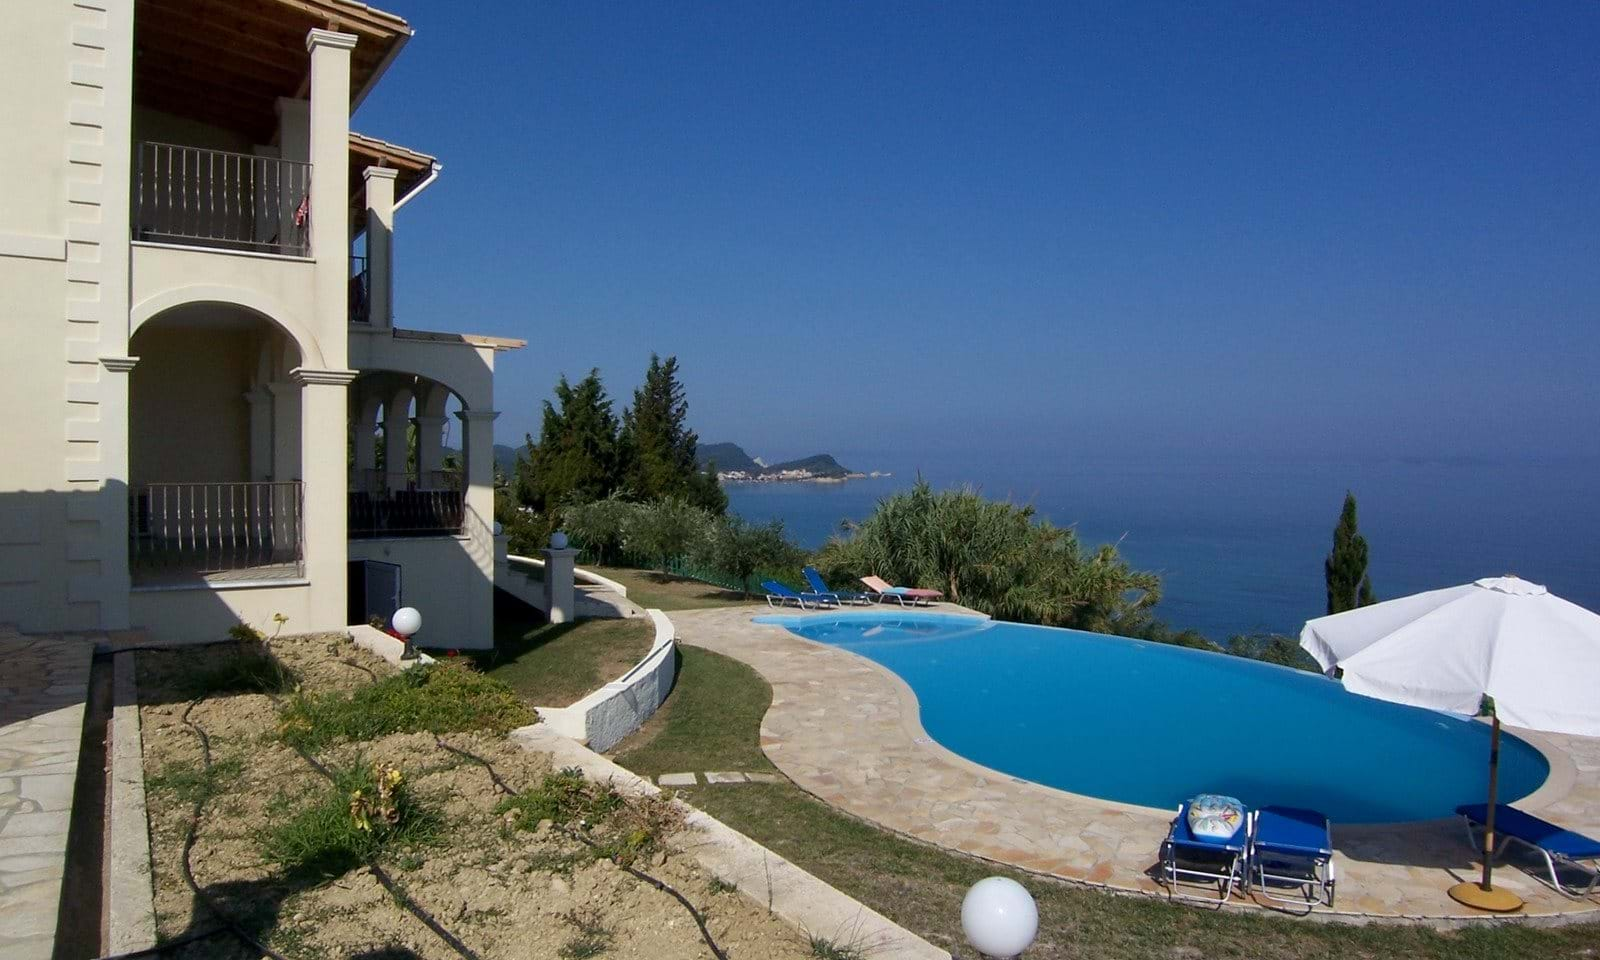 Luxury seaside villas for sale in Greece